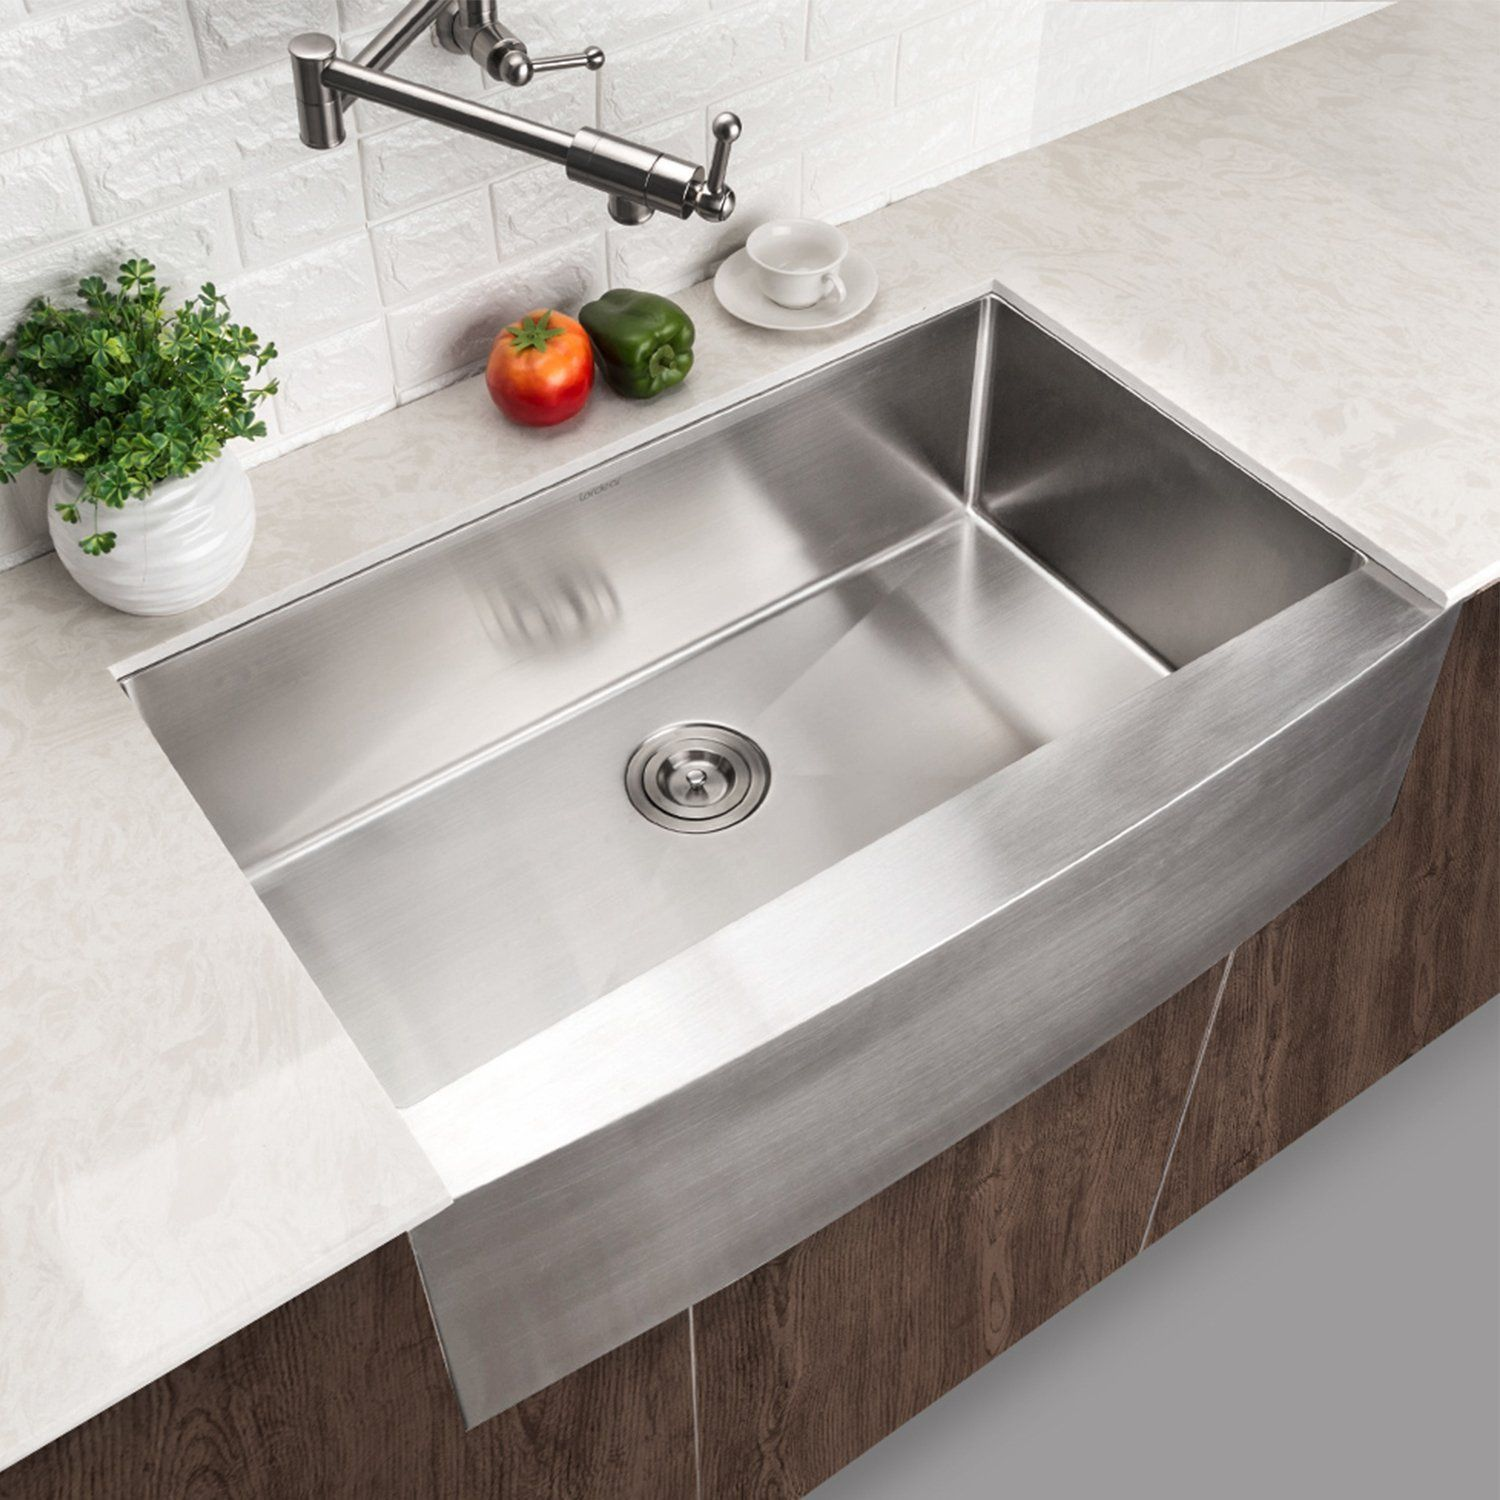 Lordear Slj16003 Commercial 33 Inch 16 Gauge 10 Inch Deep Drop In Stainless Steel Undermout Stainless Steel Farmhouse Sink Stainless Steel Farm Sink Farm Sink